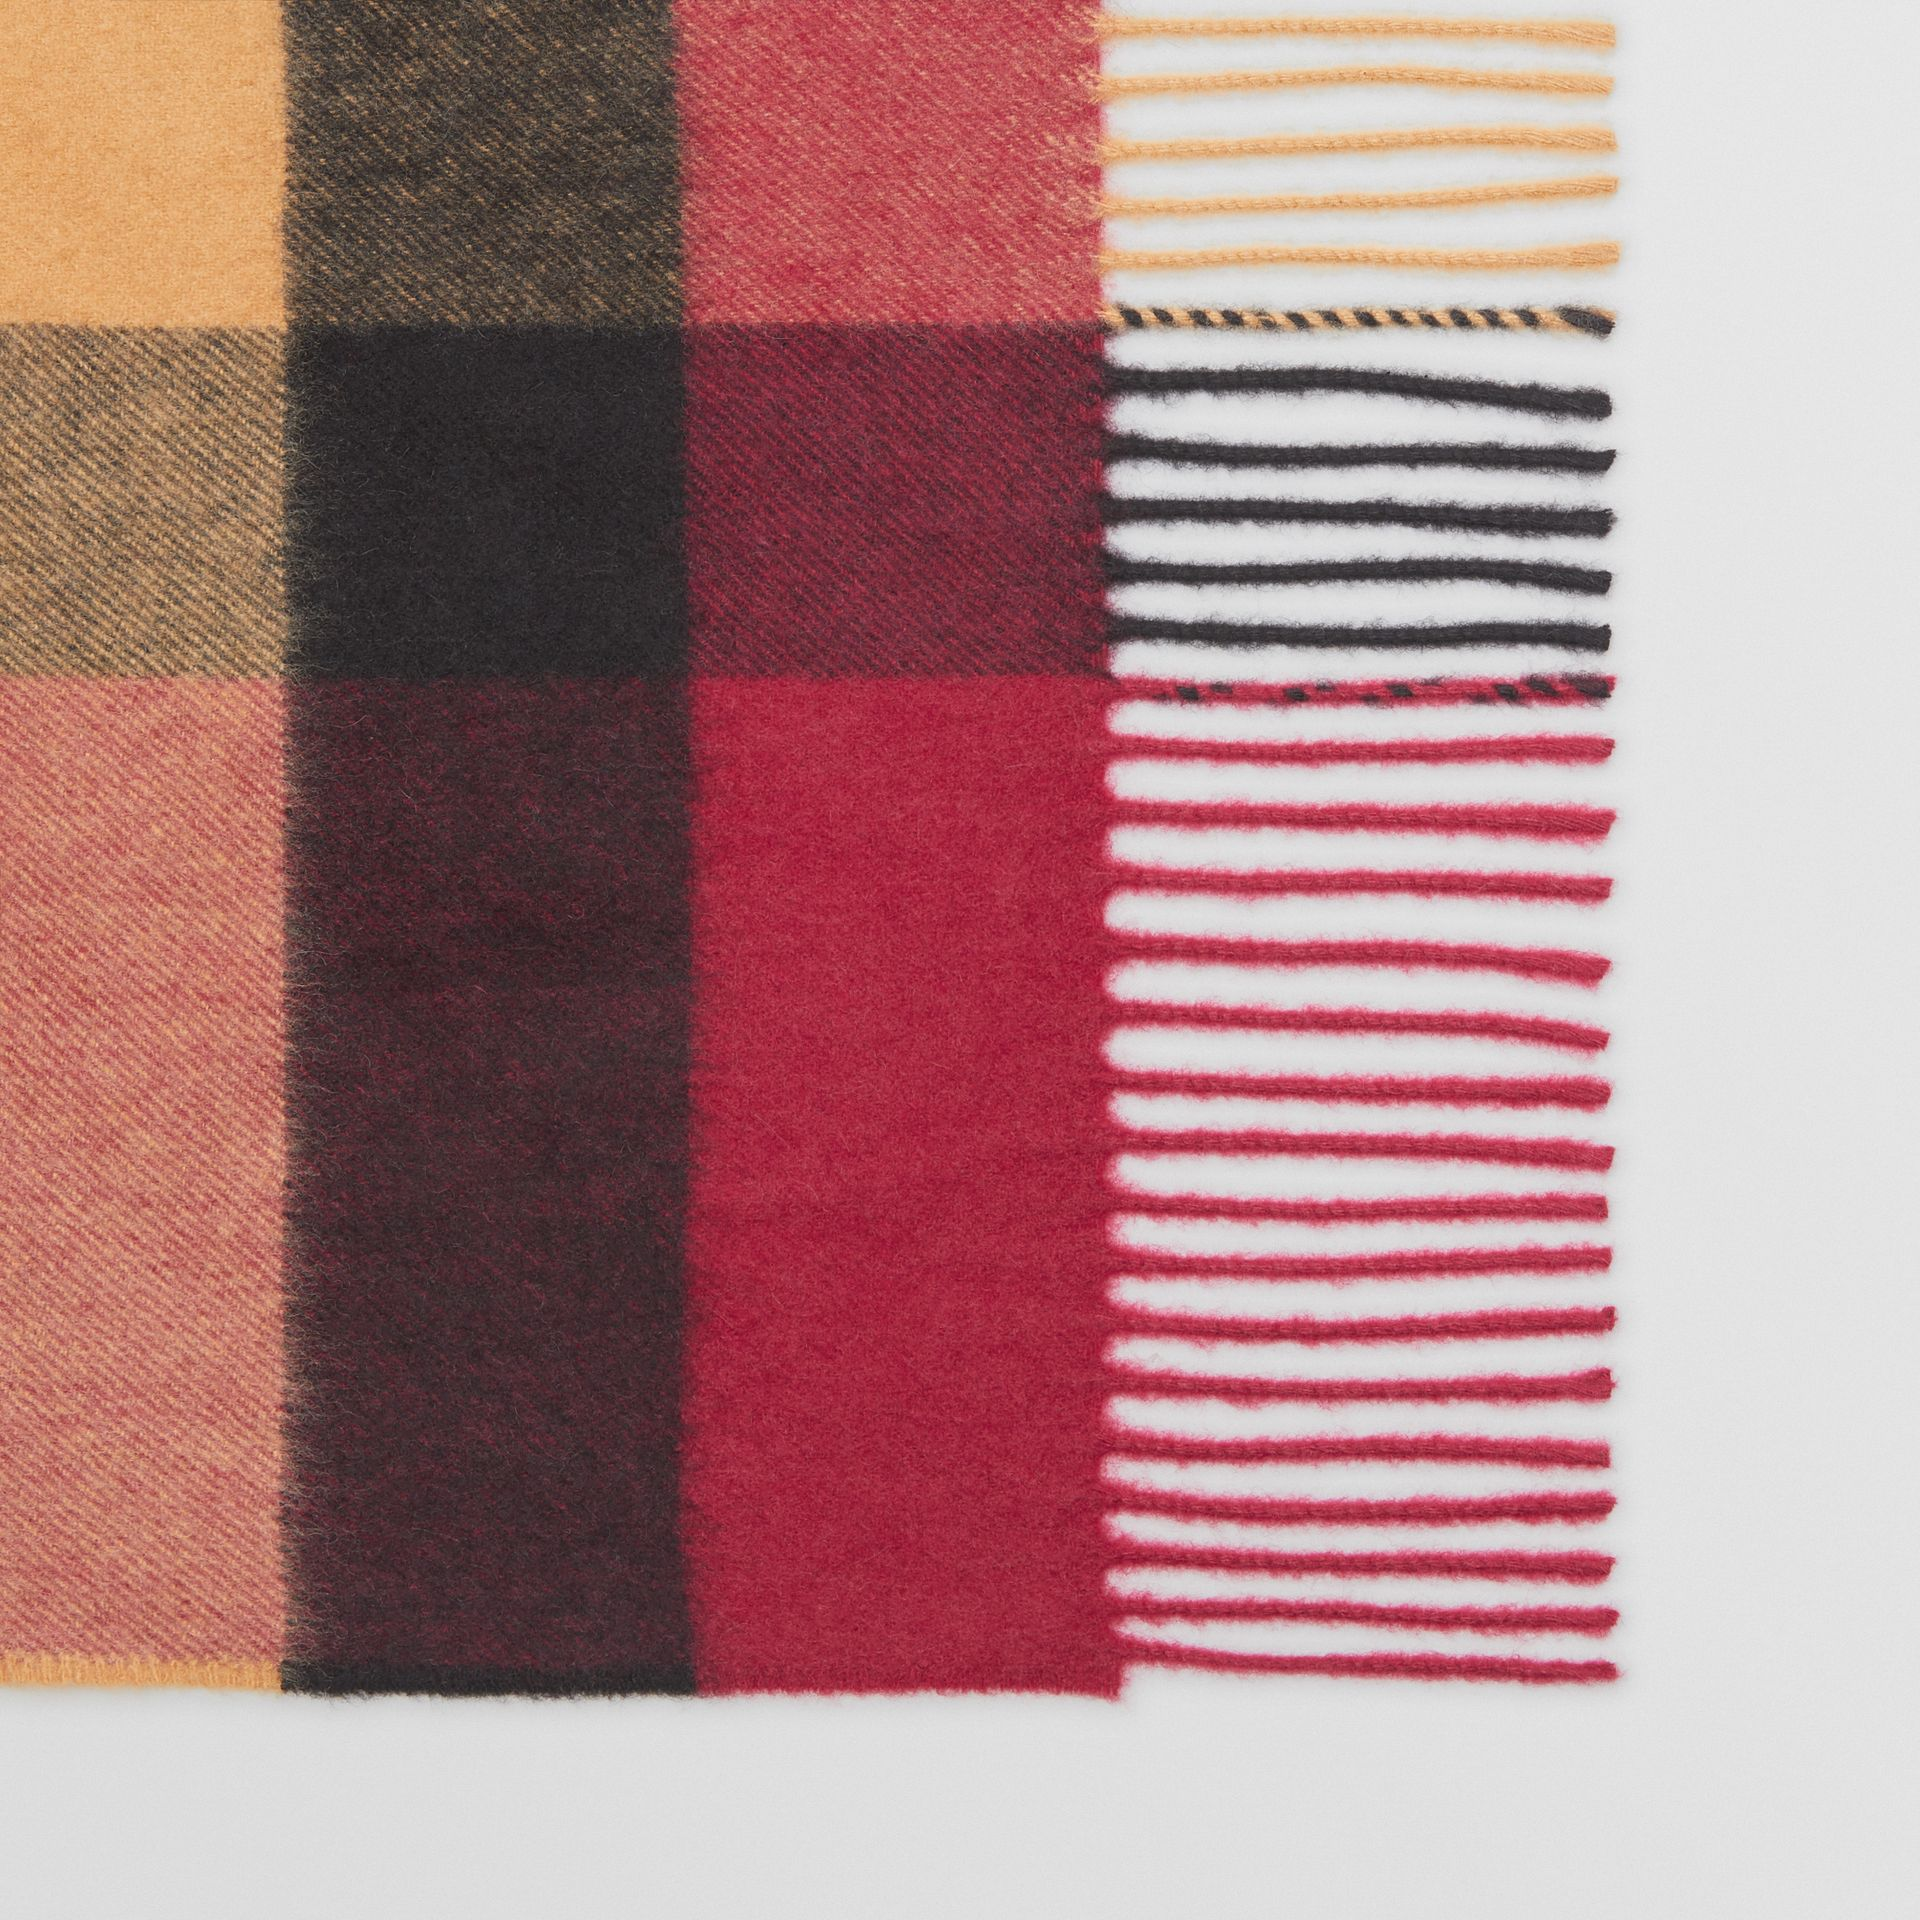 The Burberry Bandana in Check Cashmere in Damson Pink | Burberry United Kingdom - gallery image 1